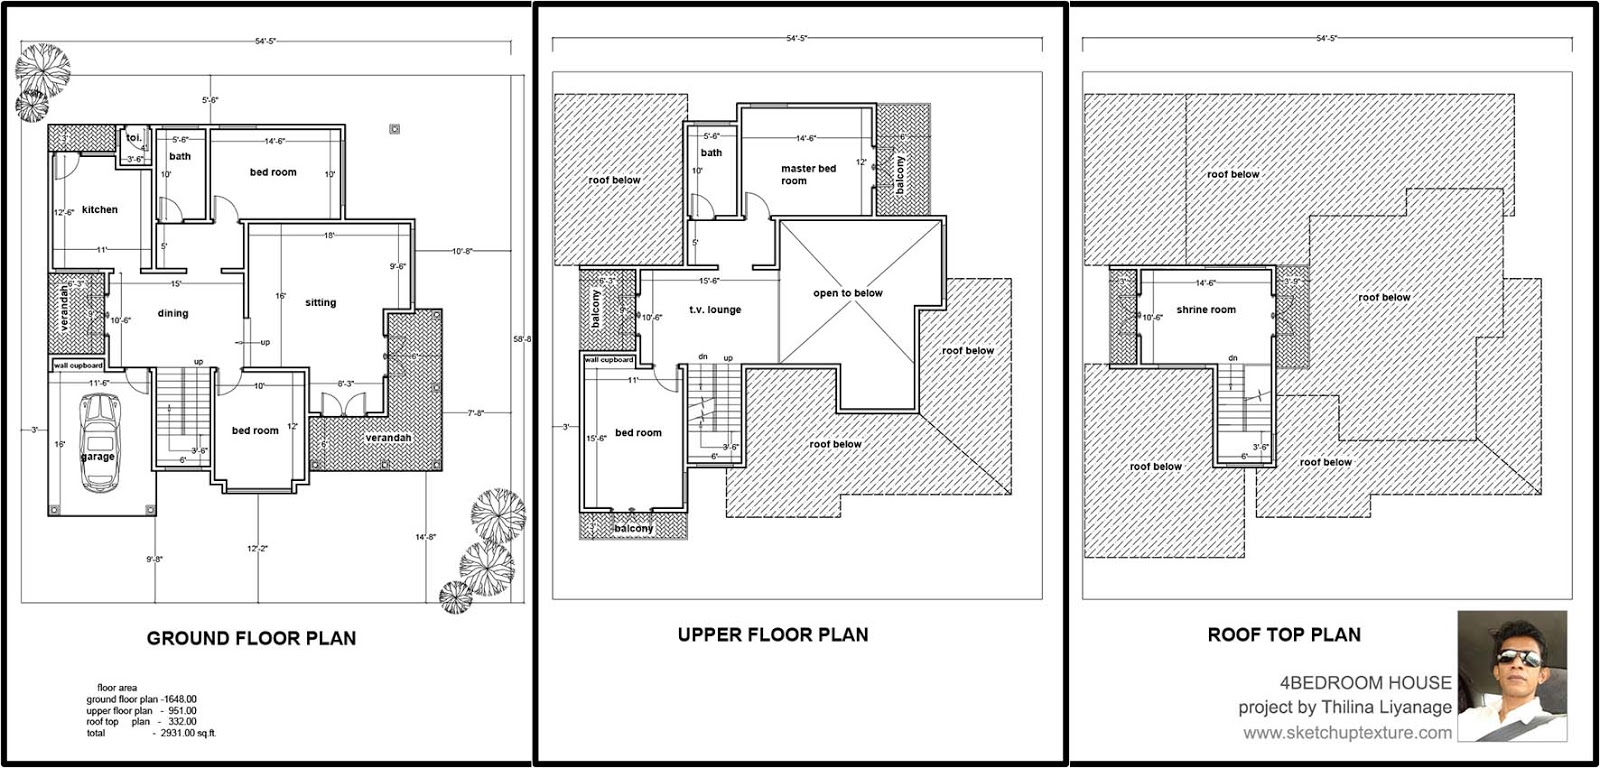 33#sketchup 3d model 4 bedroom house autocad 2d plan